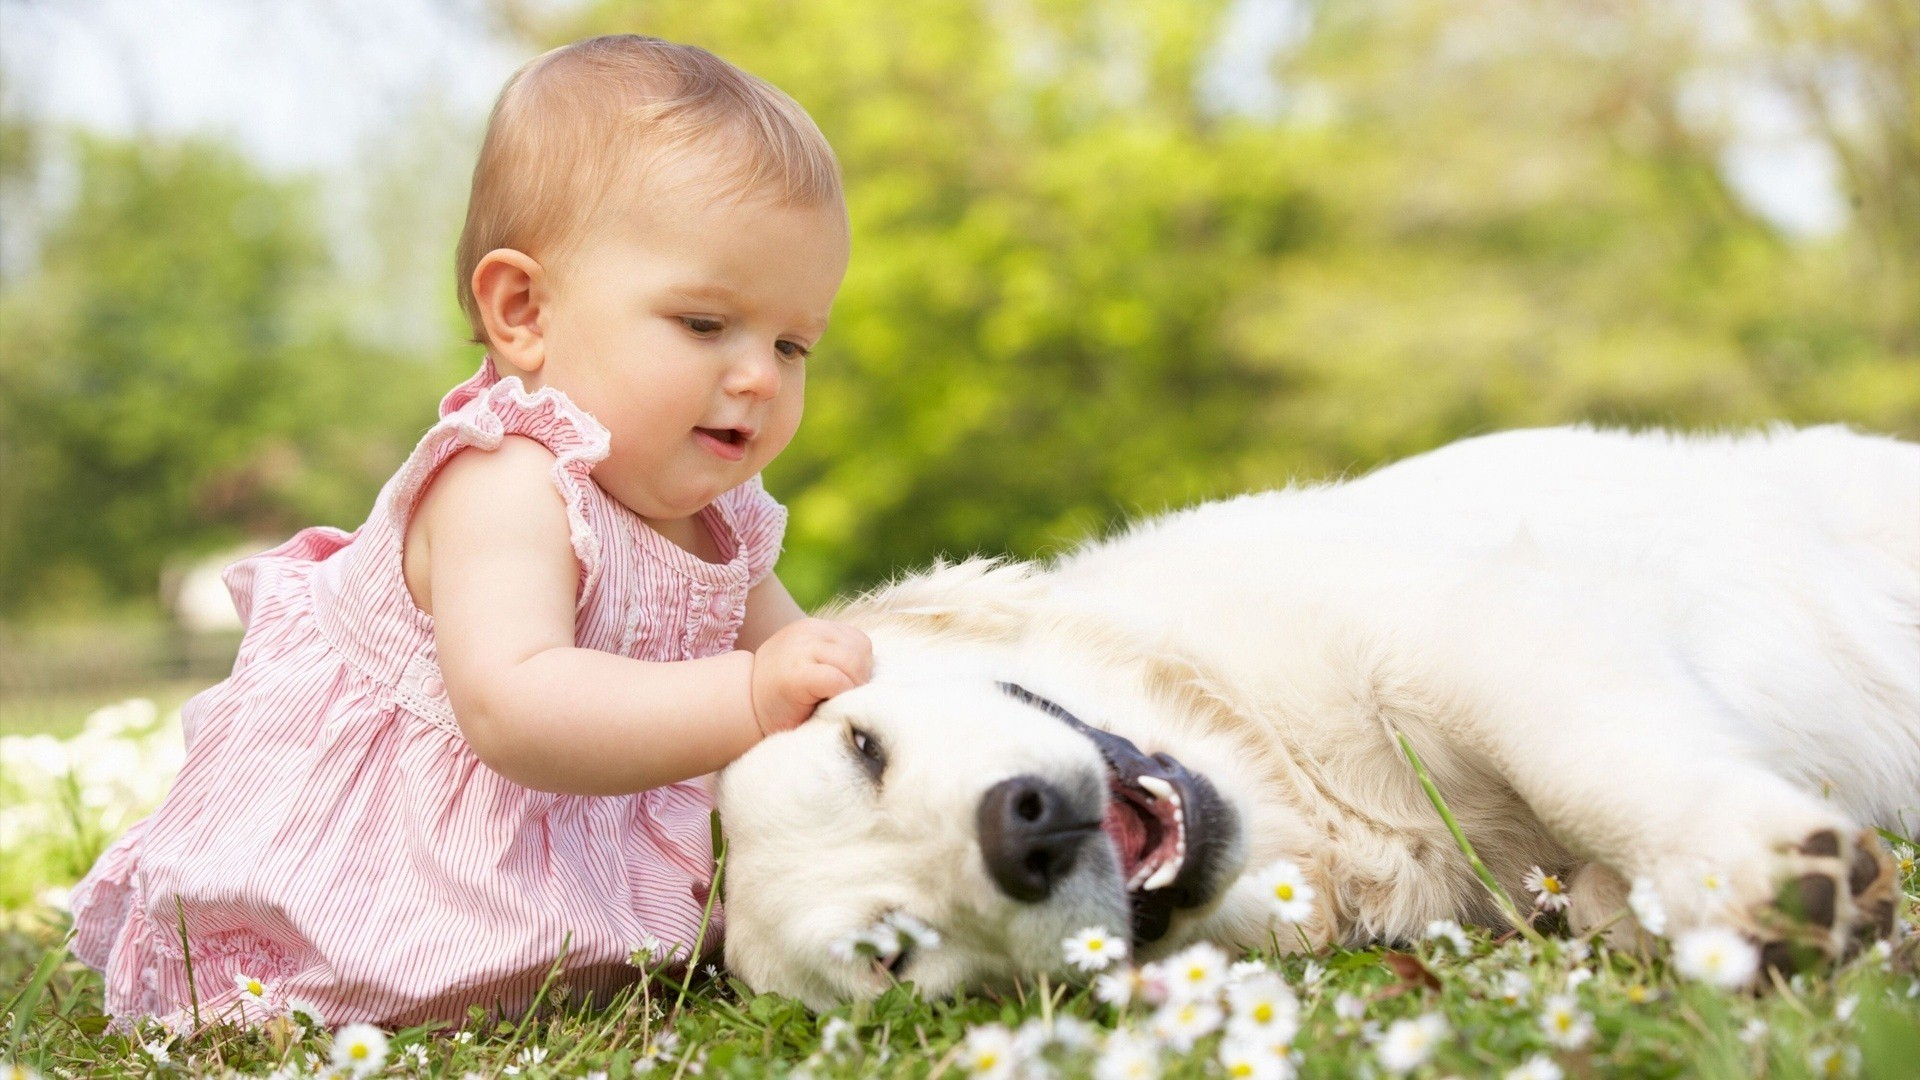 1920x1080 4640 Views 1659 Download Cute Baby Playing With Dog In Garden HD Wallpaper